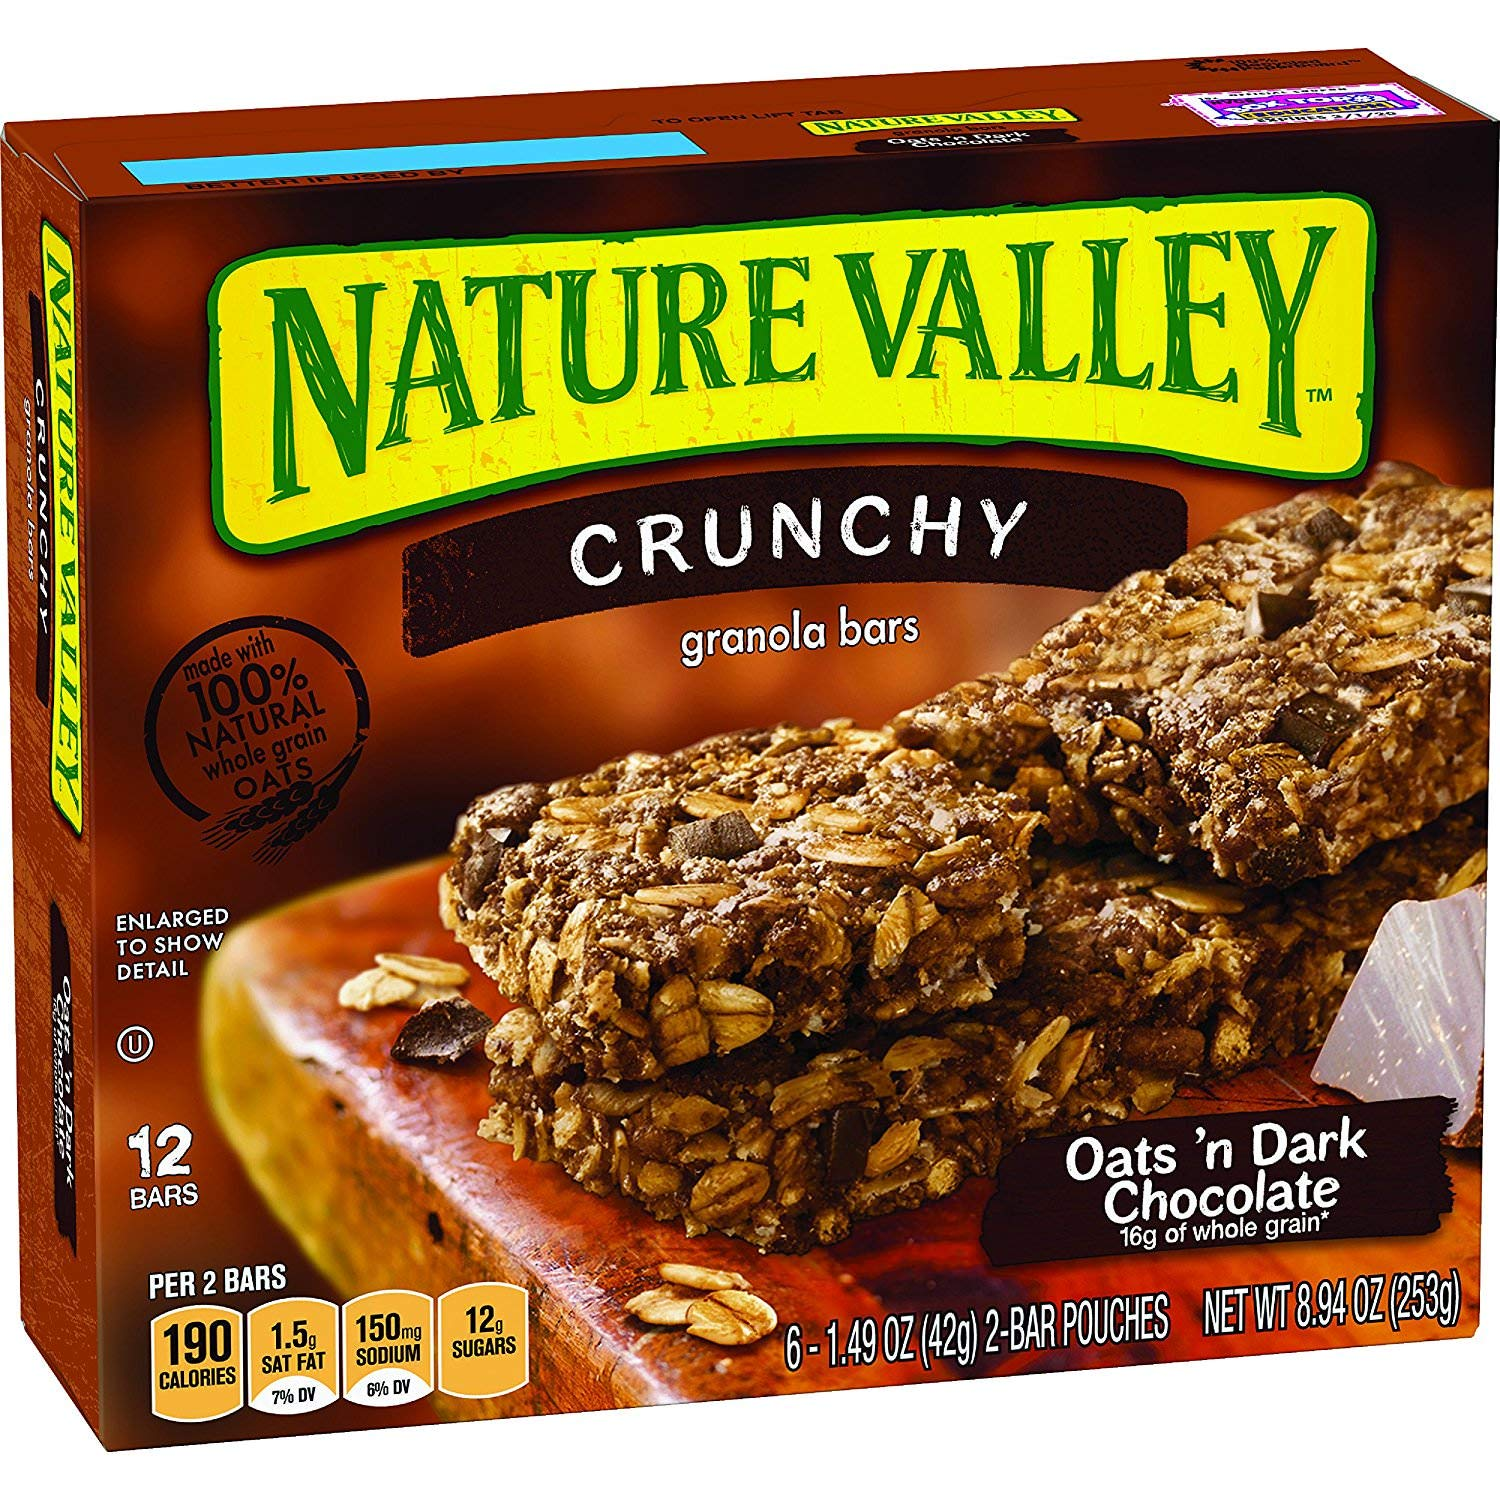 Nature Valley Granola Bars, Crunchy, Oats and Dark Chocolate, 12 Bars (18 Boxes) by Nature Valley